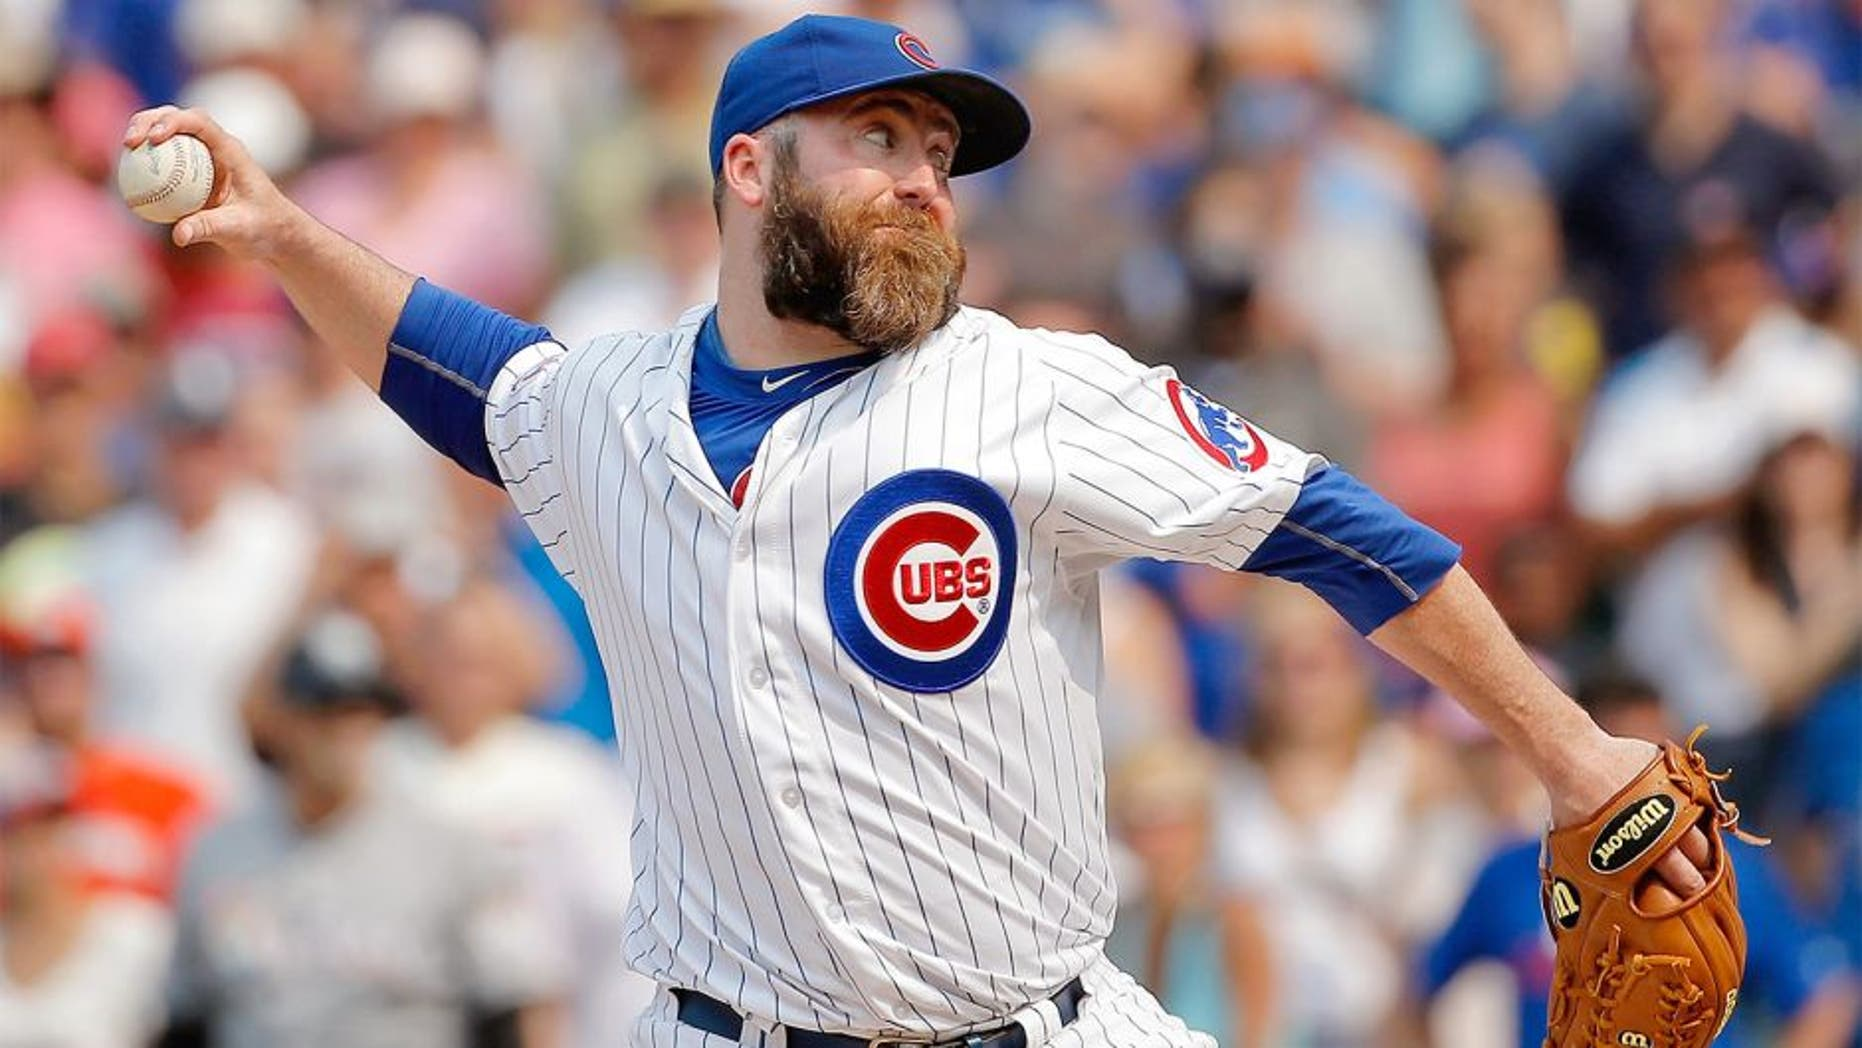 CHICAGO, IL - JULY 05: Jason Motte #30 of the Chicago Cubs pitches against the Miami Marlins during the ninth inning at Wrigley Field on July 5, 2015 in Chicago, Illinois. The Chicago Cubs won 2-0. (Photo by Jon Durr/Getty Images)